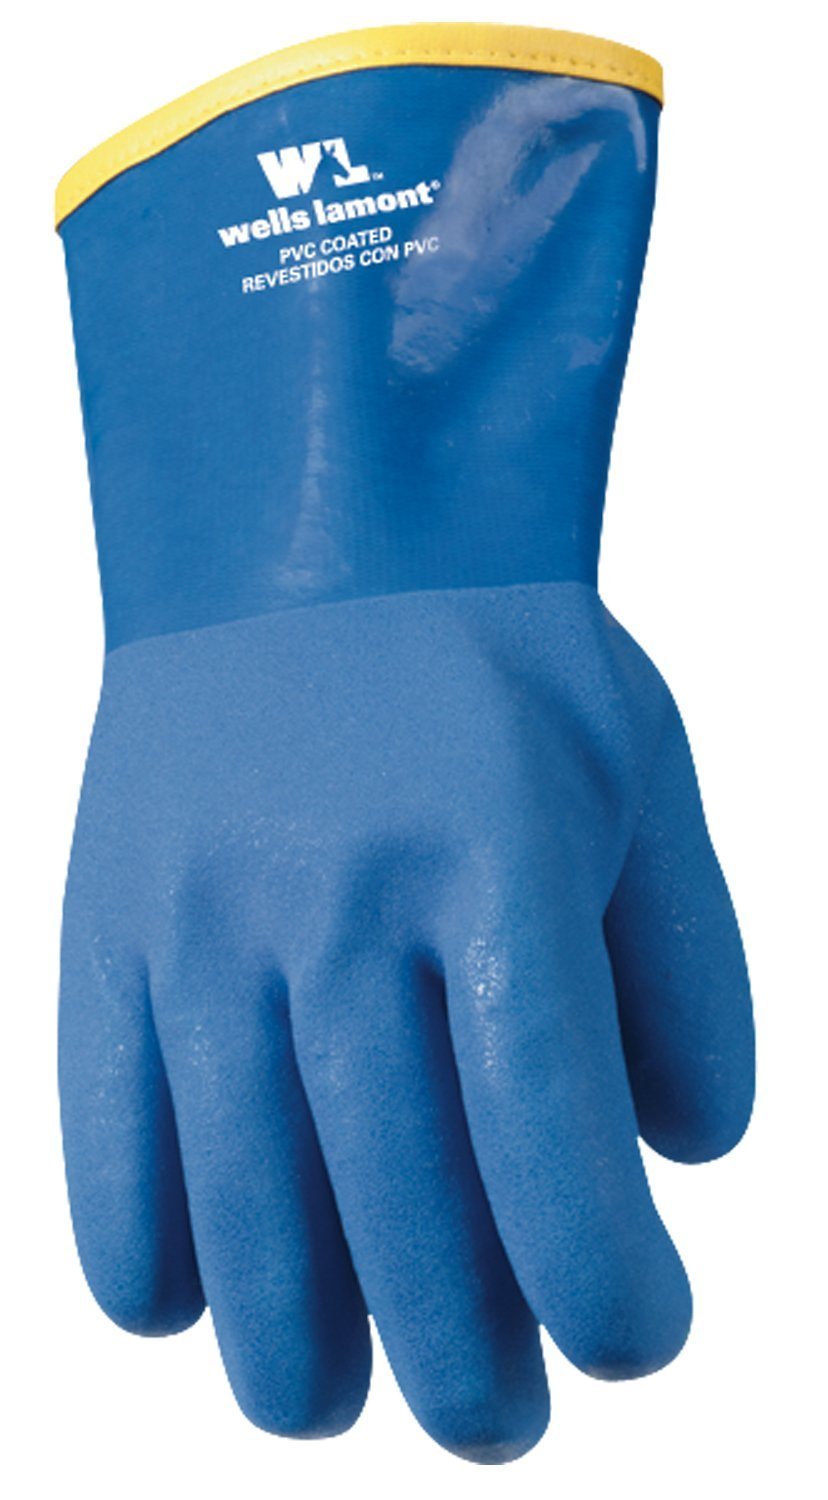 Wells 174L Lamont Work Gloves with Gauntlet Cuff